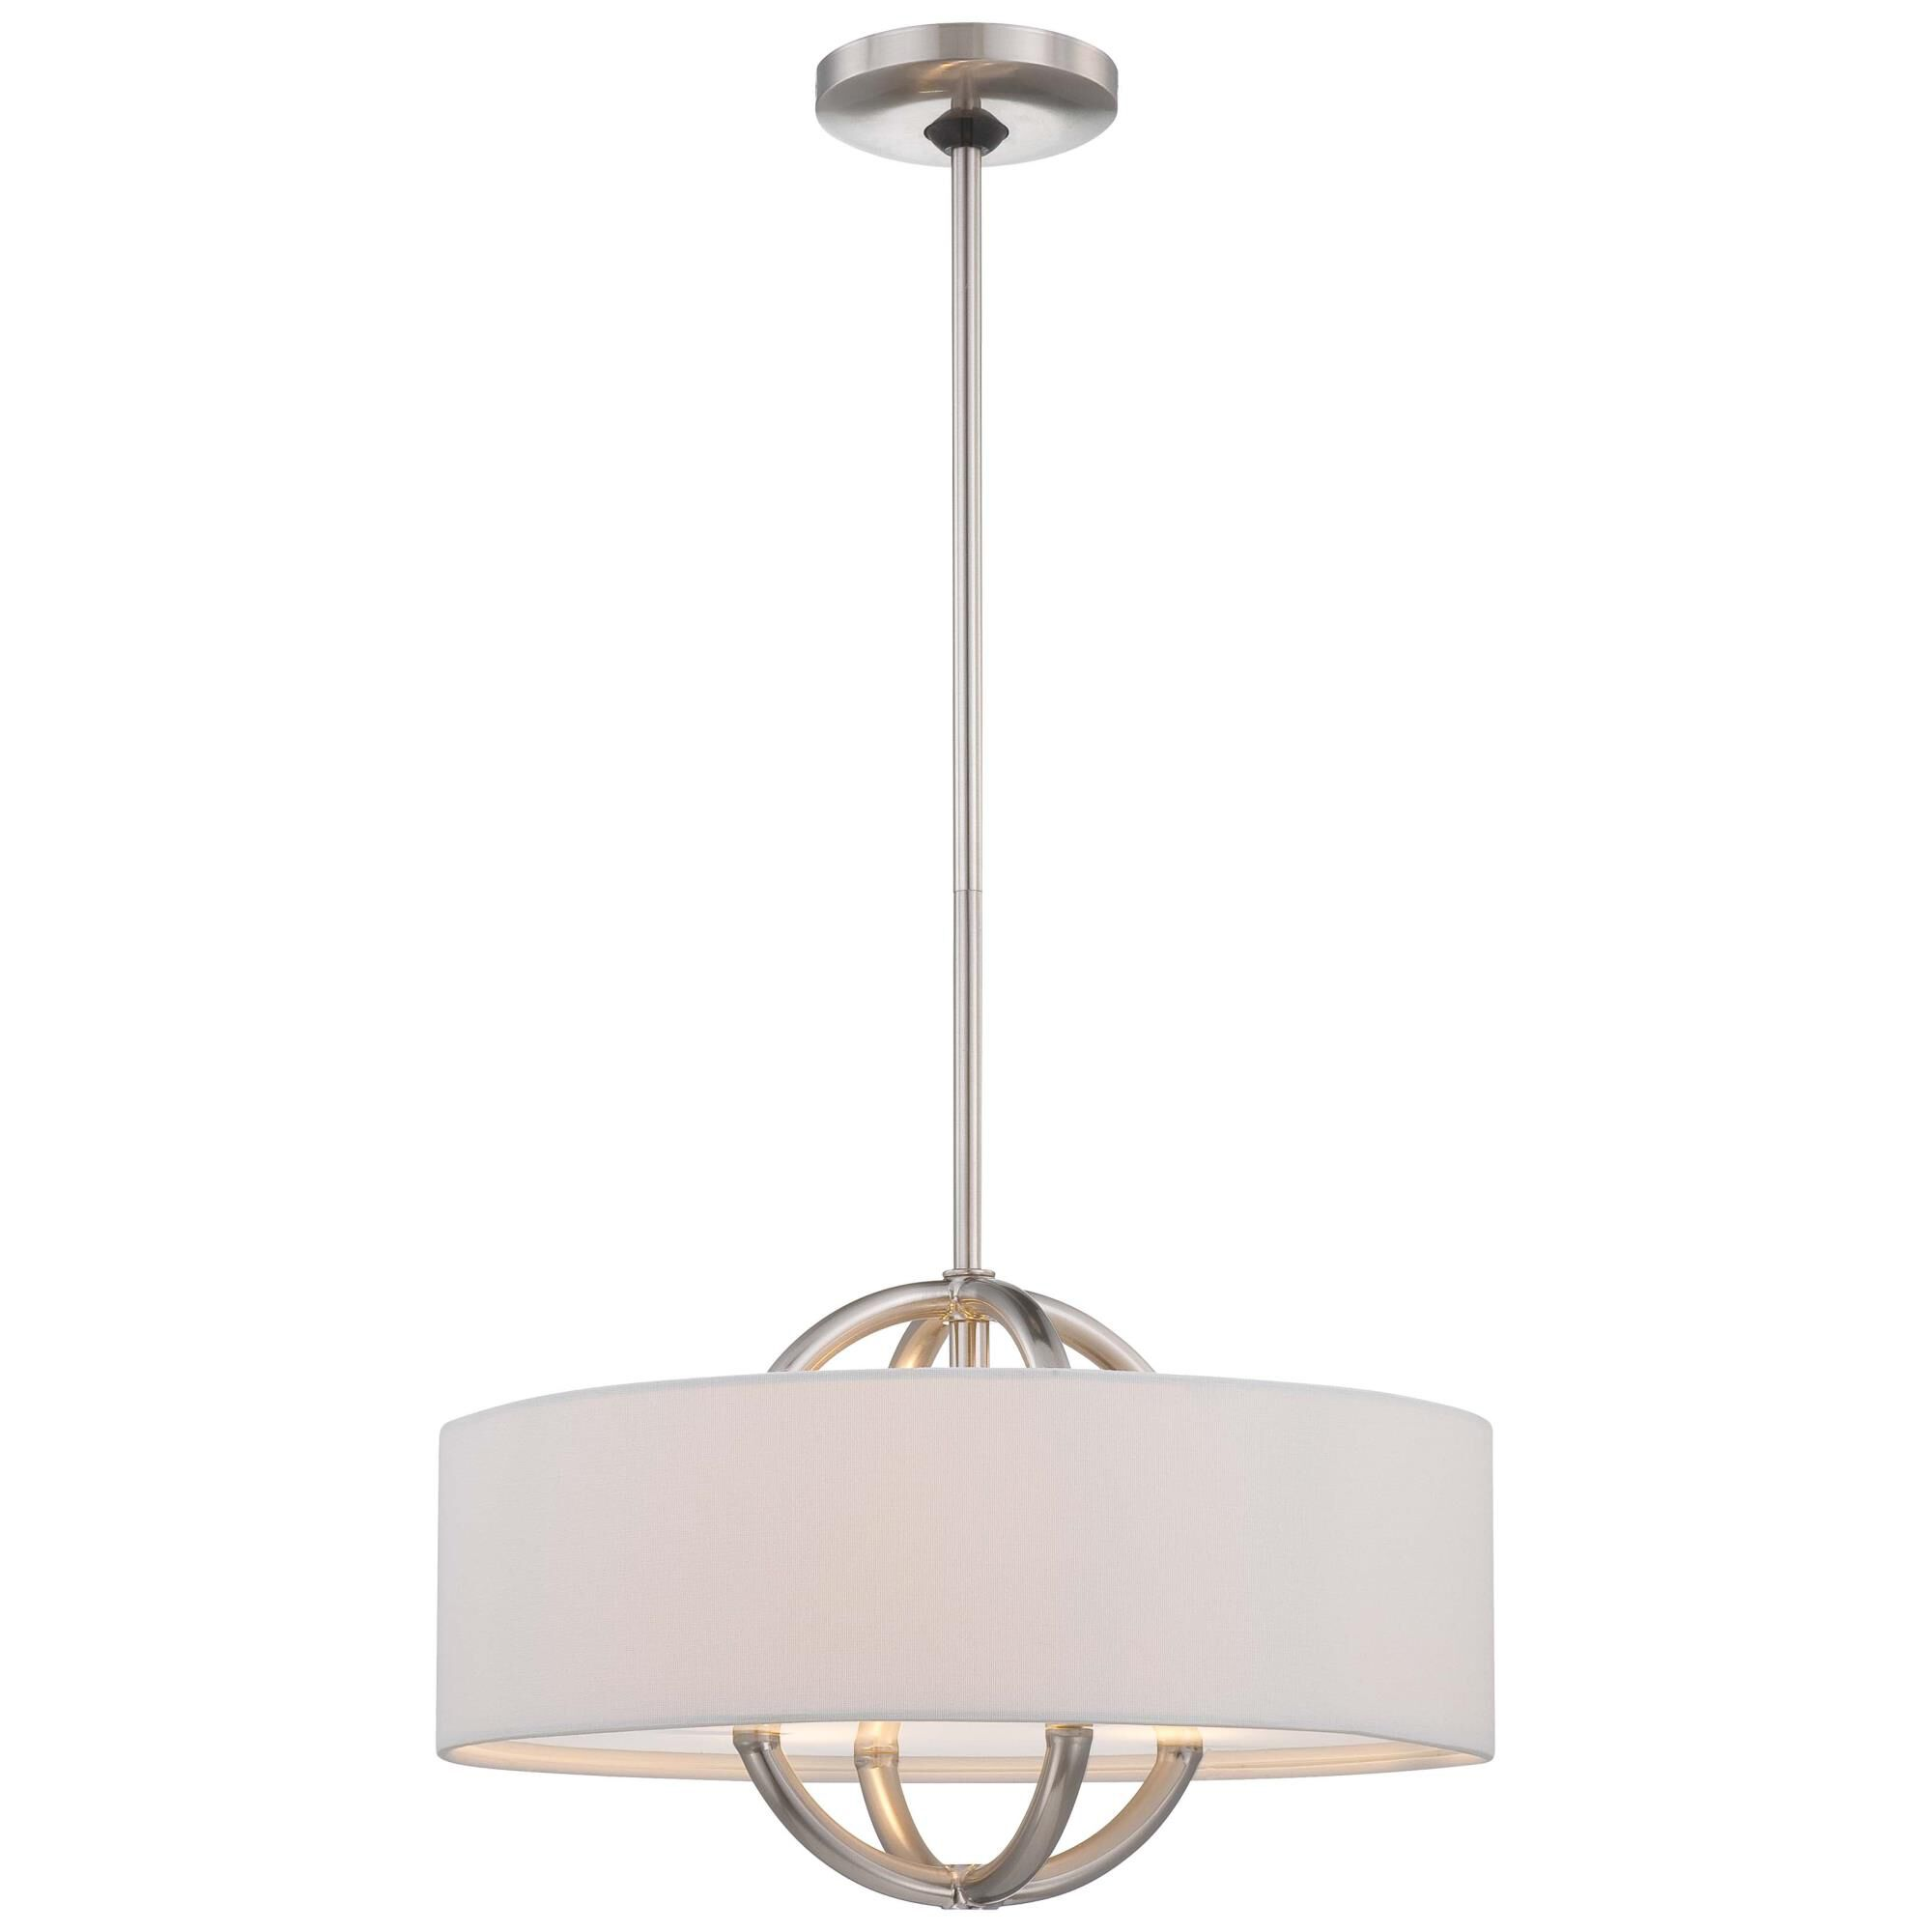 Kovacs 18 Inch Large Pendant - P075-084 - Modern Contemporary